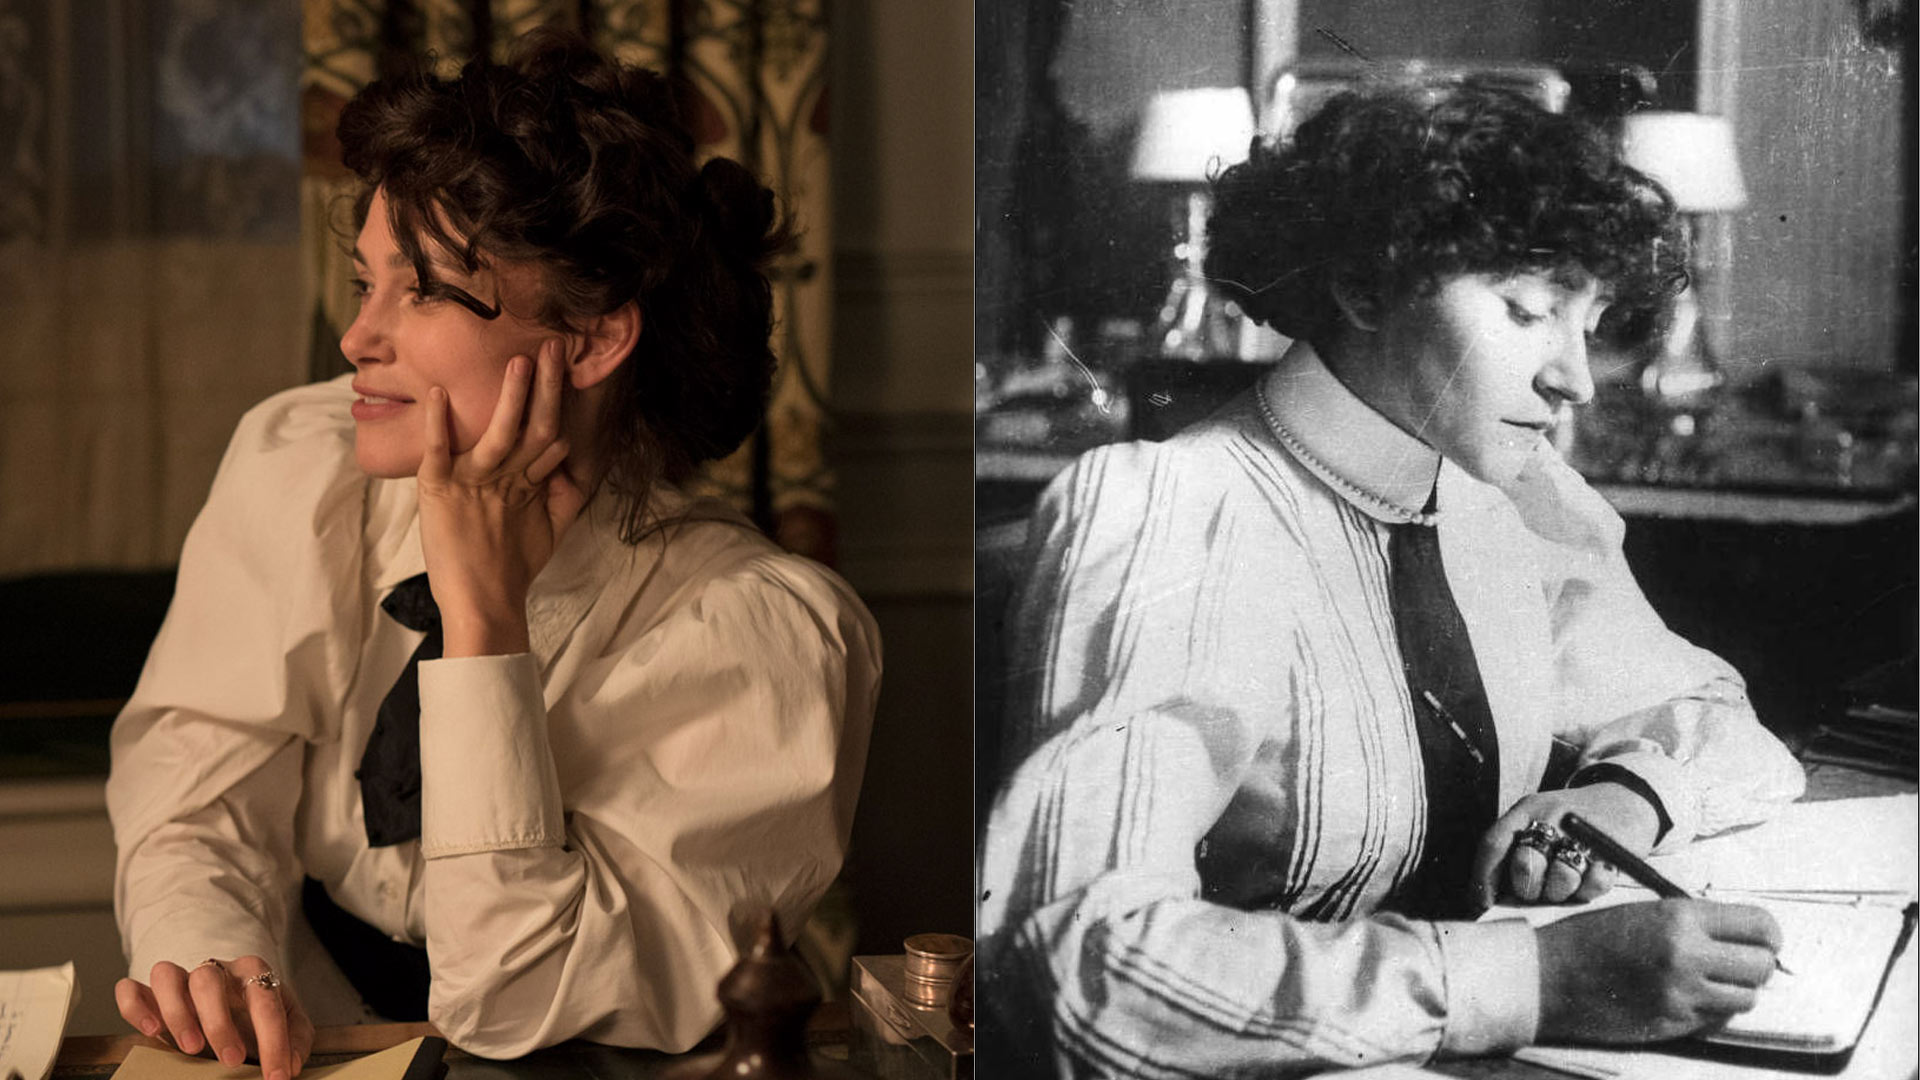 Keira Knightley (left) portrays the real Colette